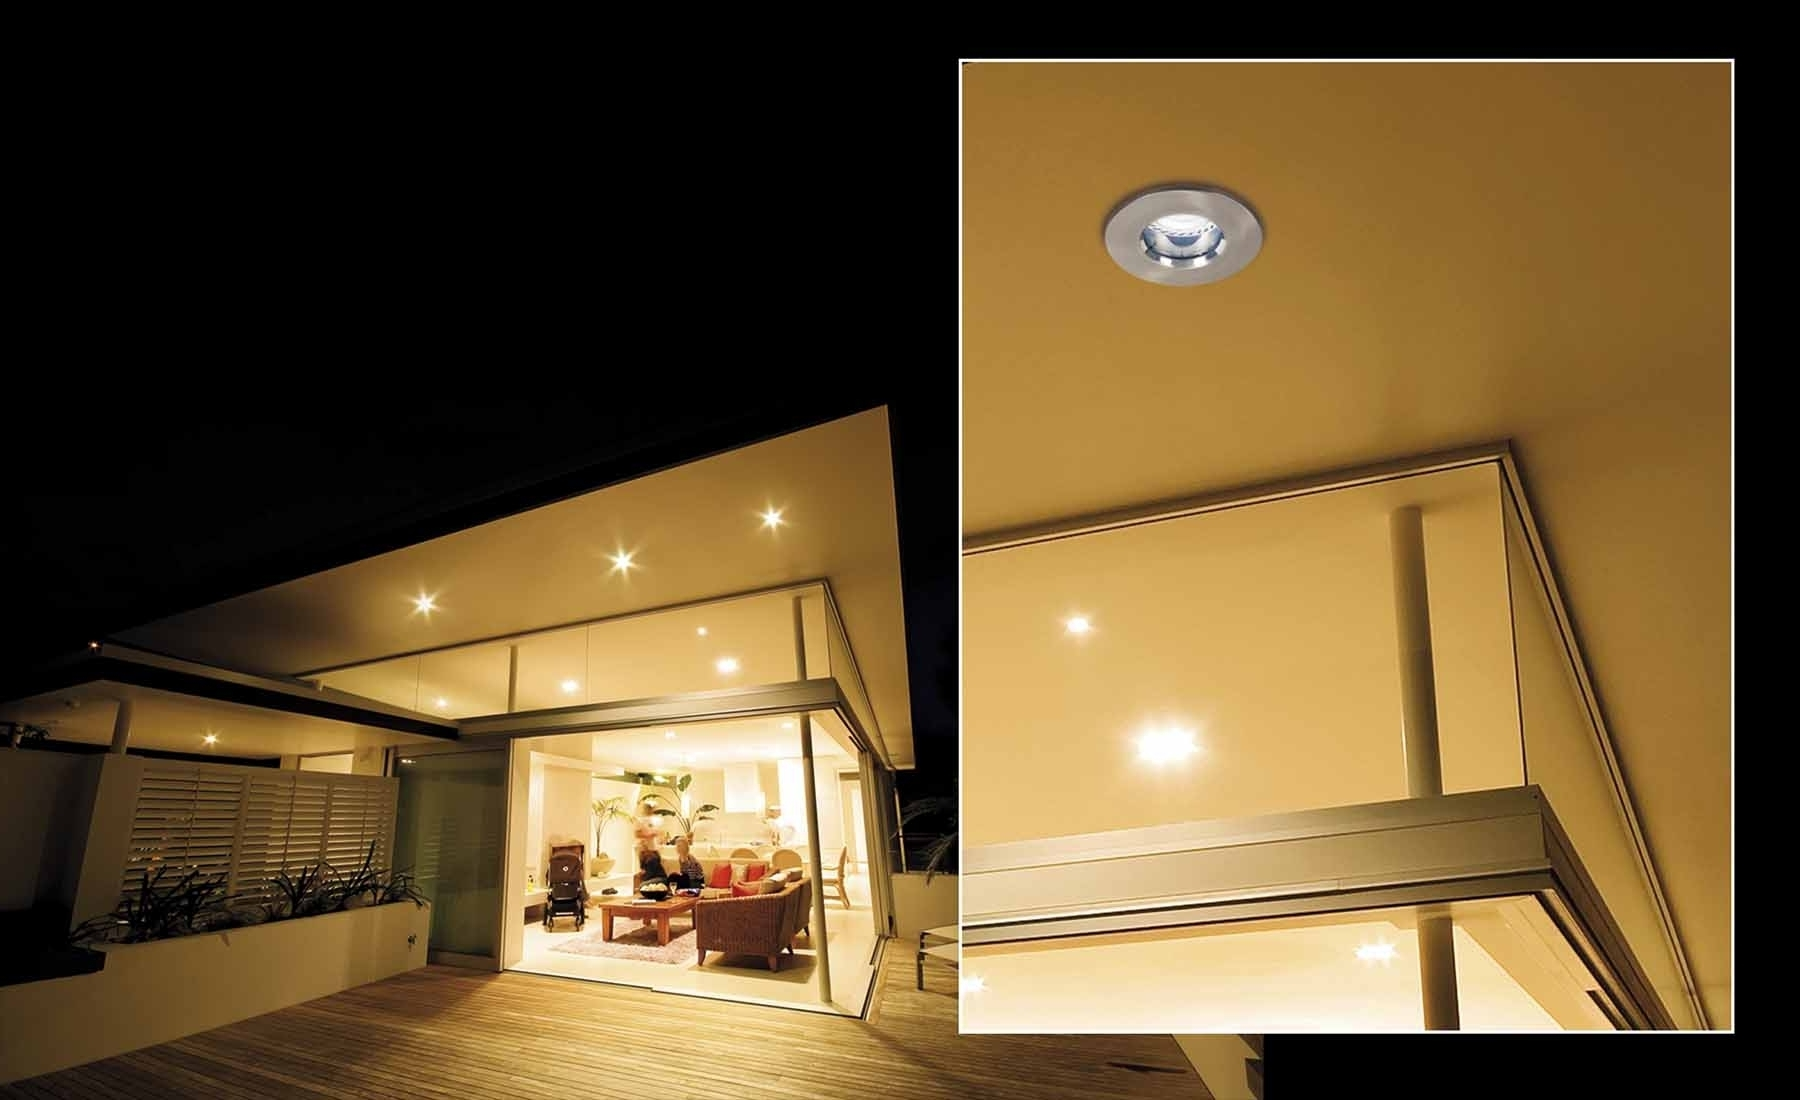 Home Decor : Modern Outdoor Ceiling Light Old Fashioned Medicine Intended For Fashionable Modern Outdoor Ceiling Lights (View 5 of 20)